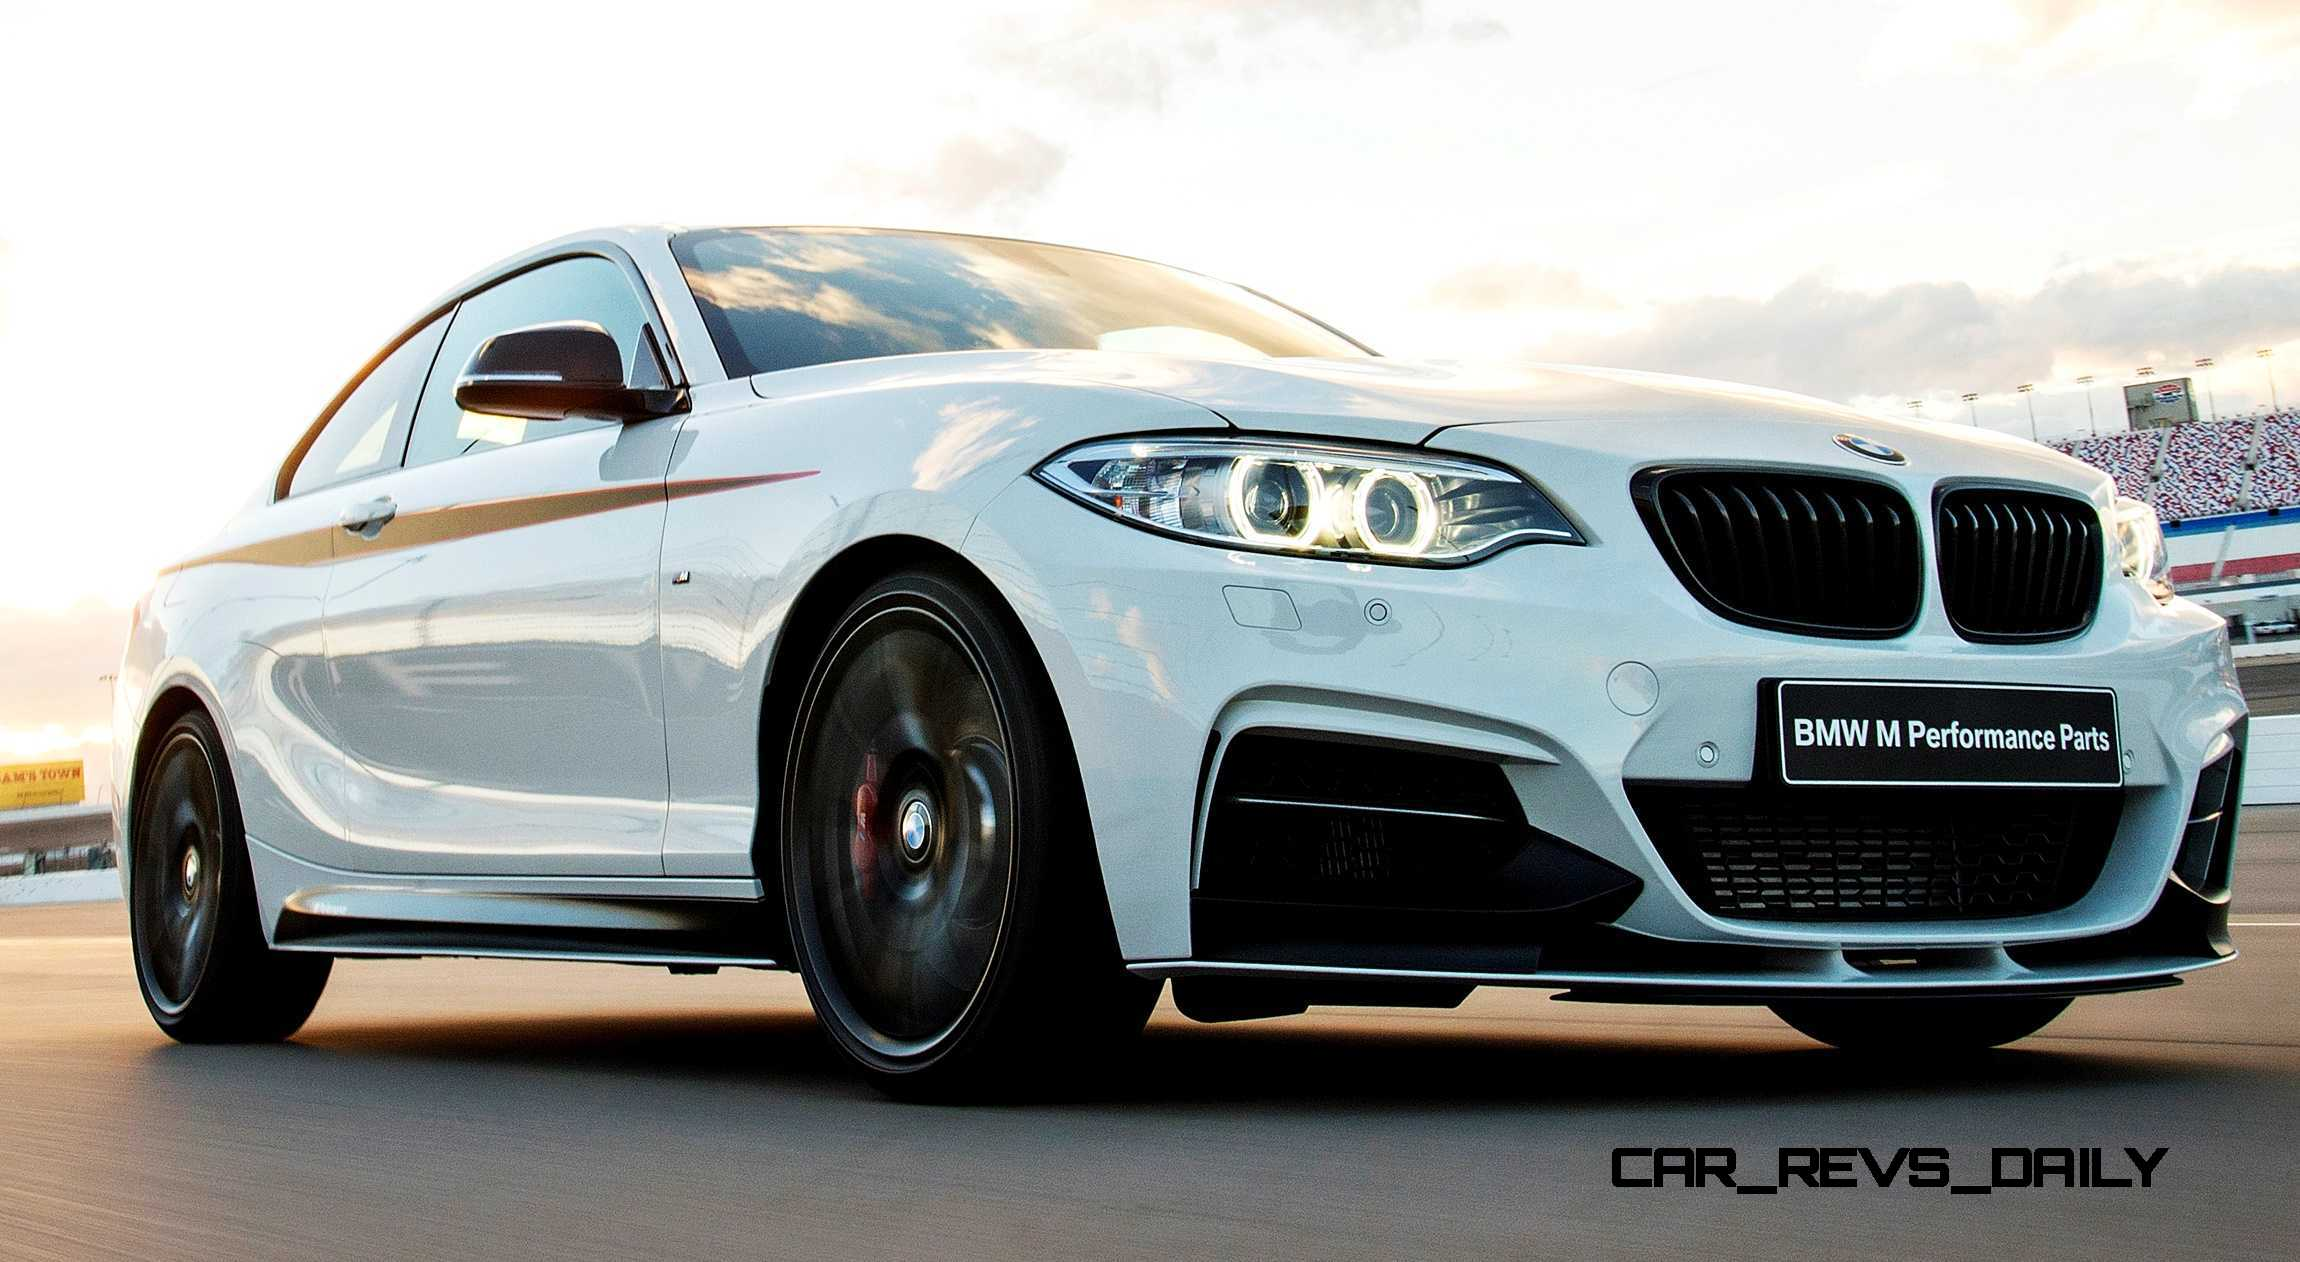 Gift Ideas - BMW 2 Series M Performance Parts Catalog Highlights 22